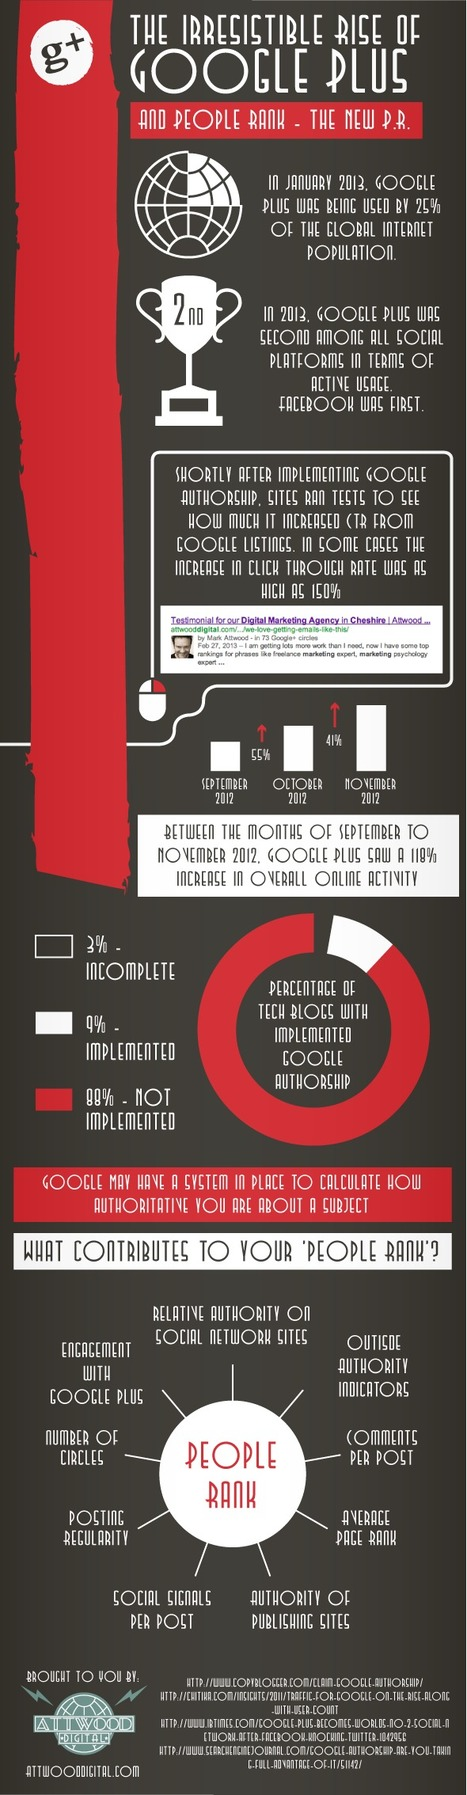 The Irresistible Rise Of Google Plus (Infographic) | Strategie réseaux sociaux | Scoop.it